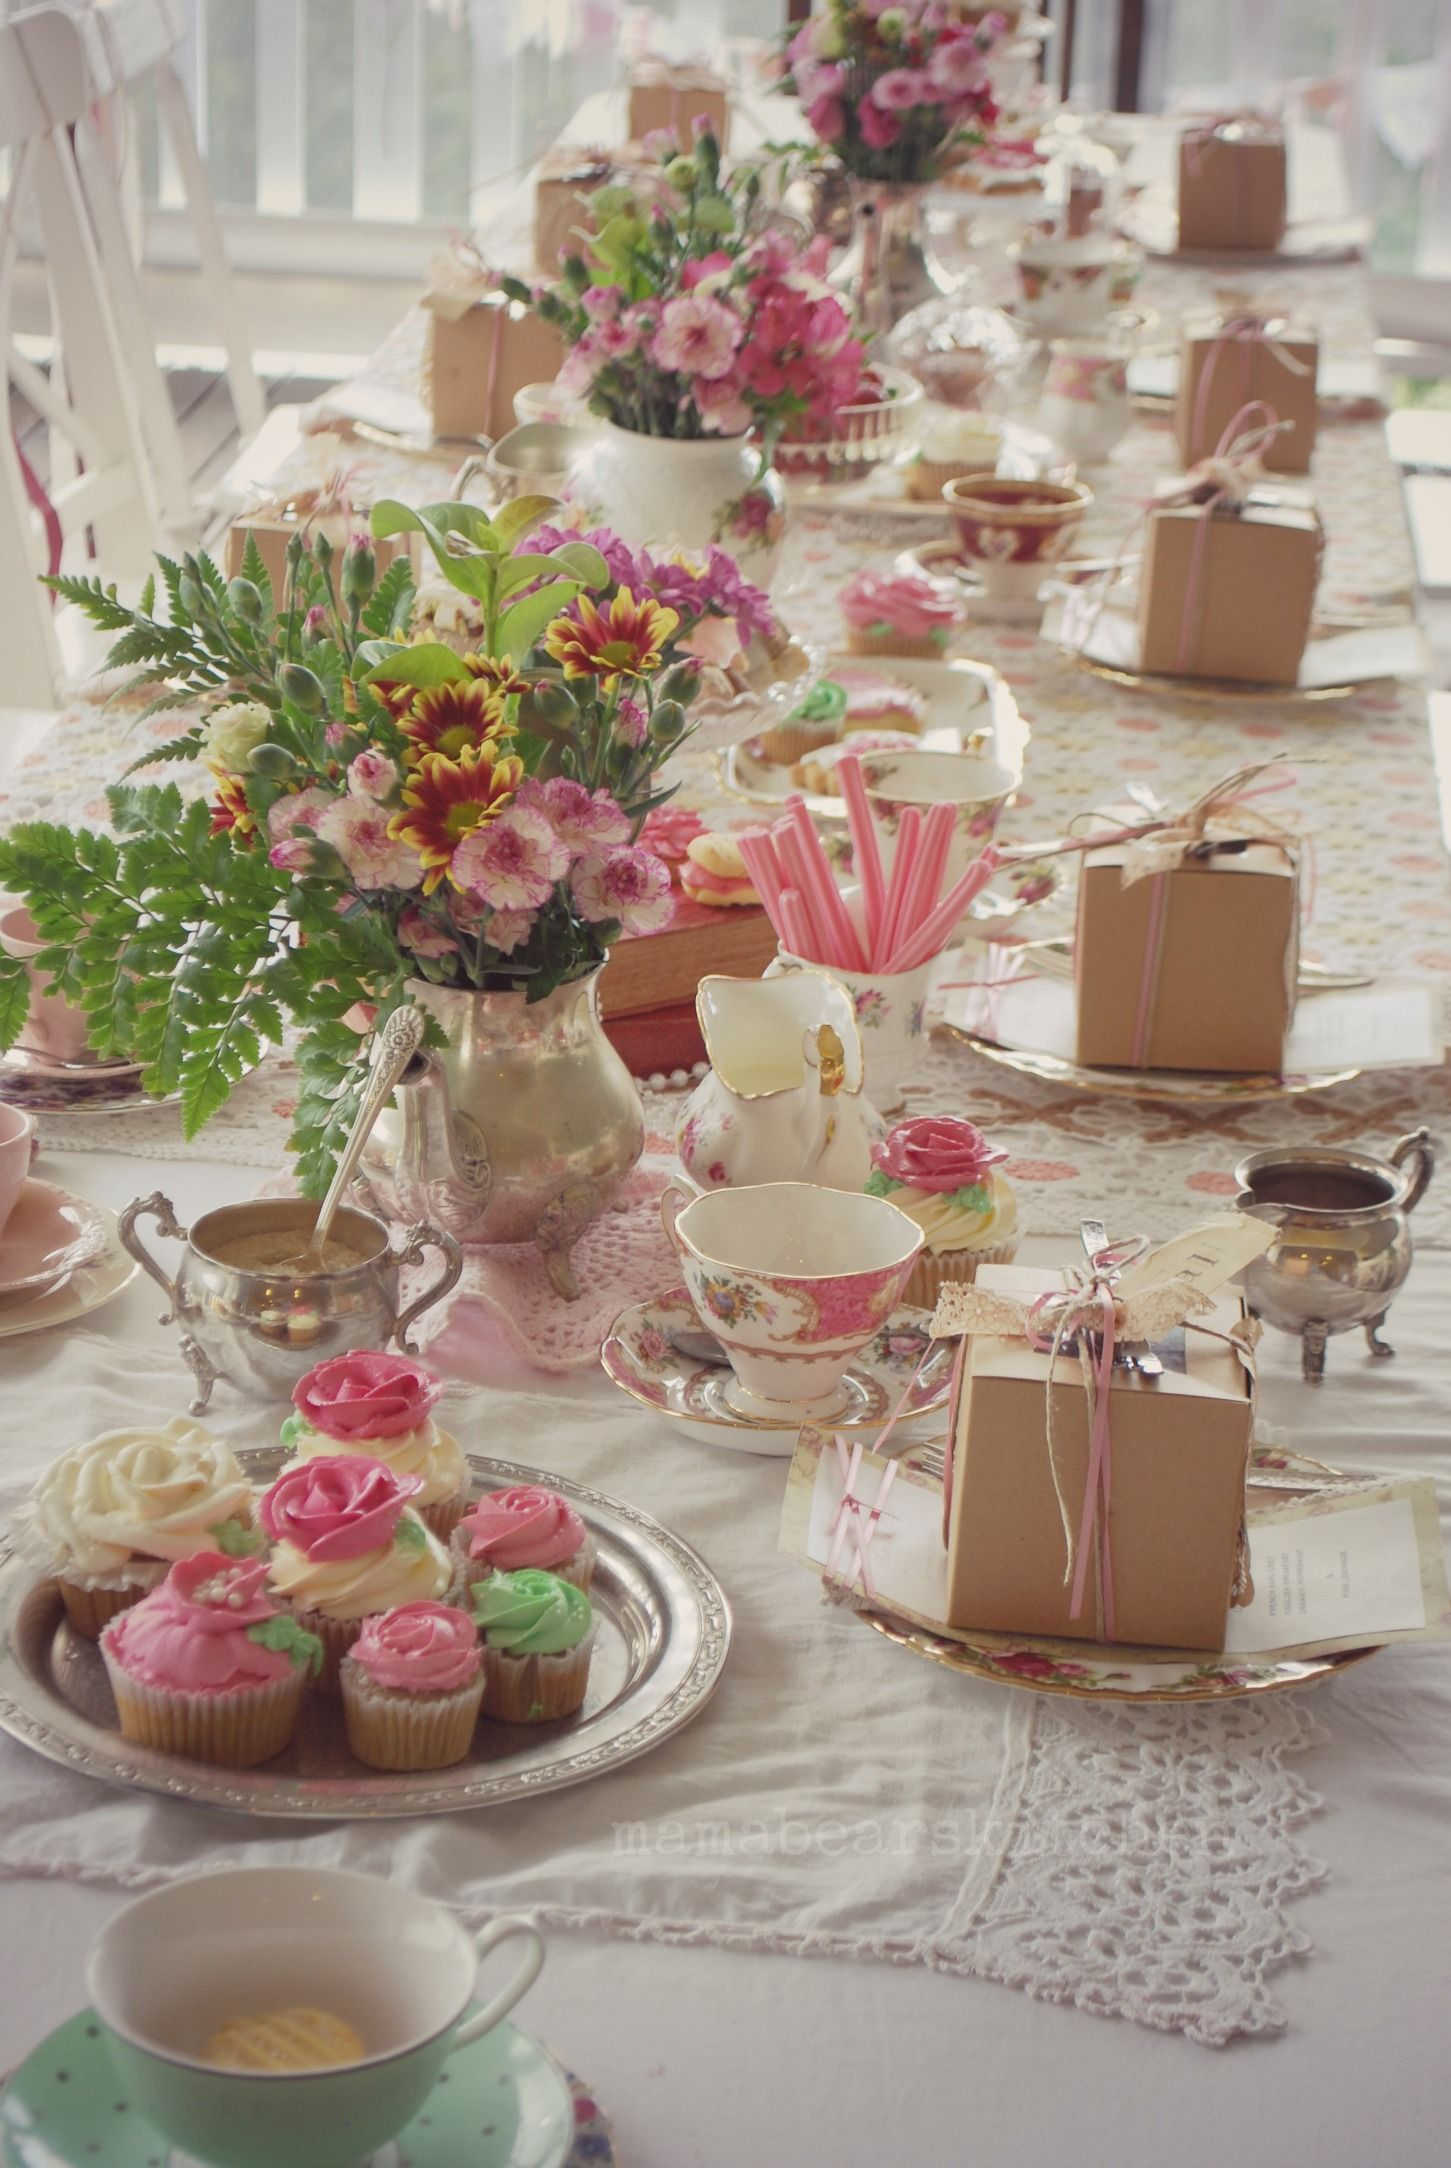 This Is The Afternoon High Tea That We Have Arranged For Roses